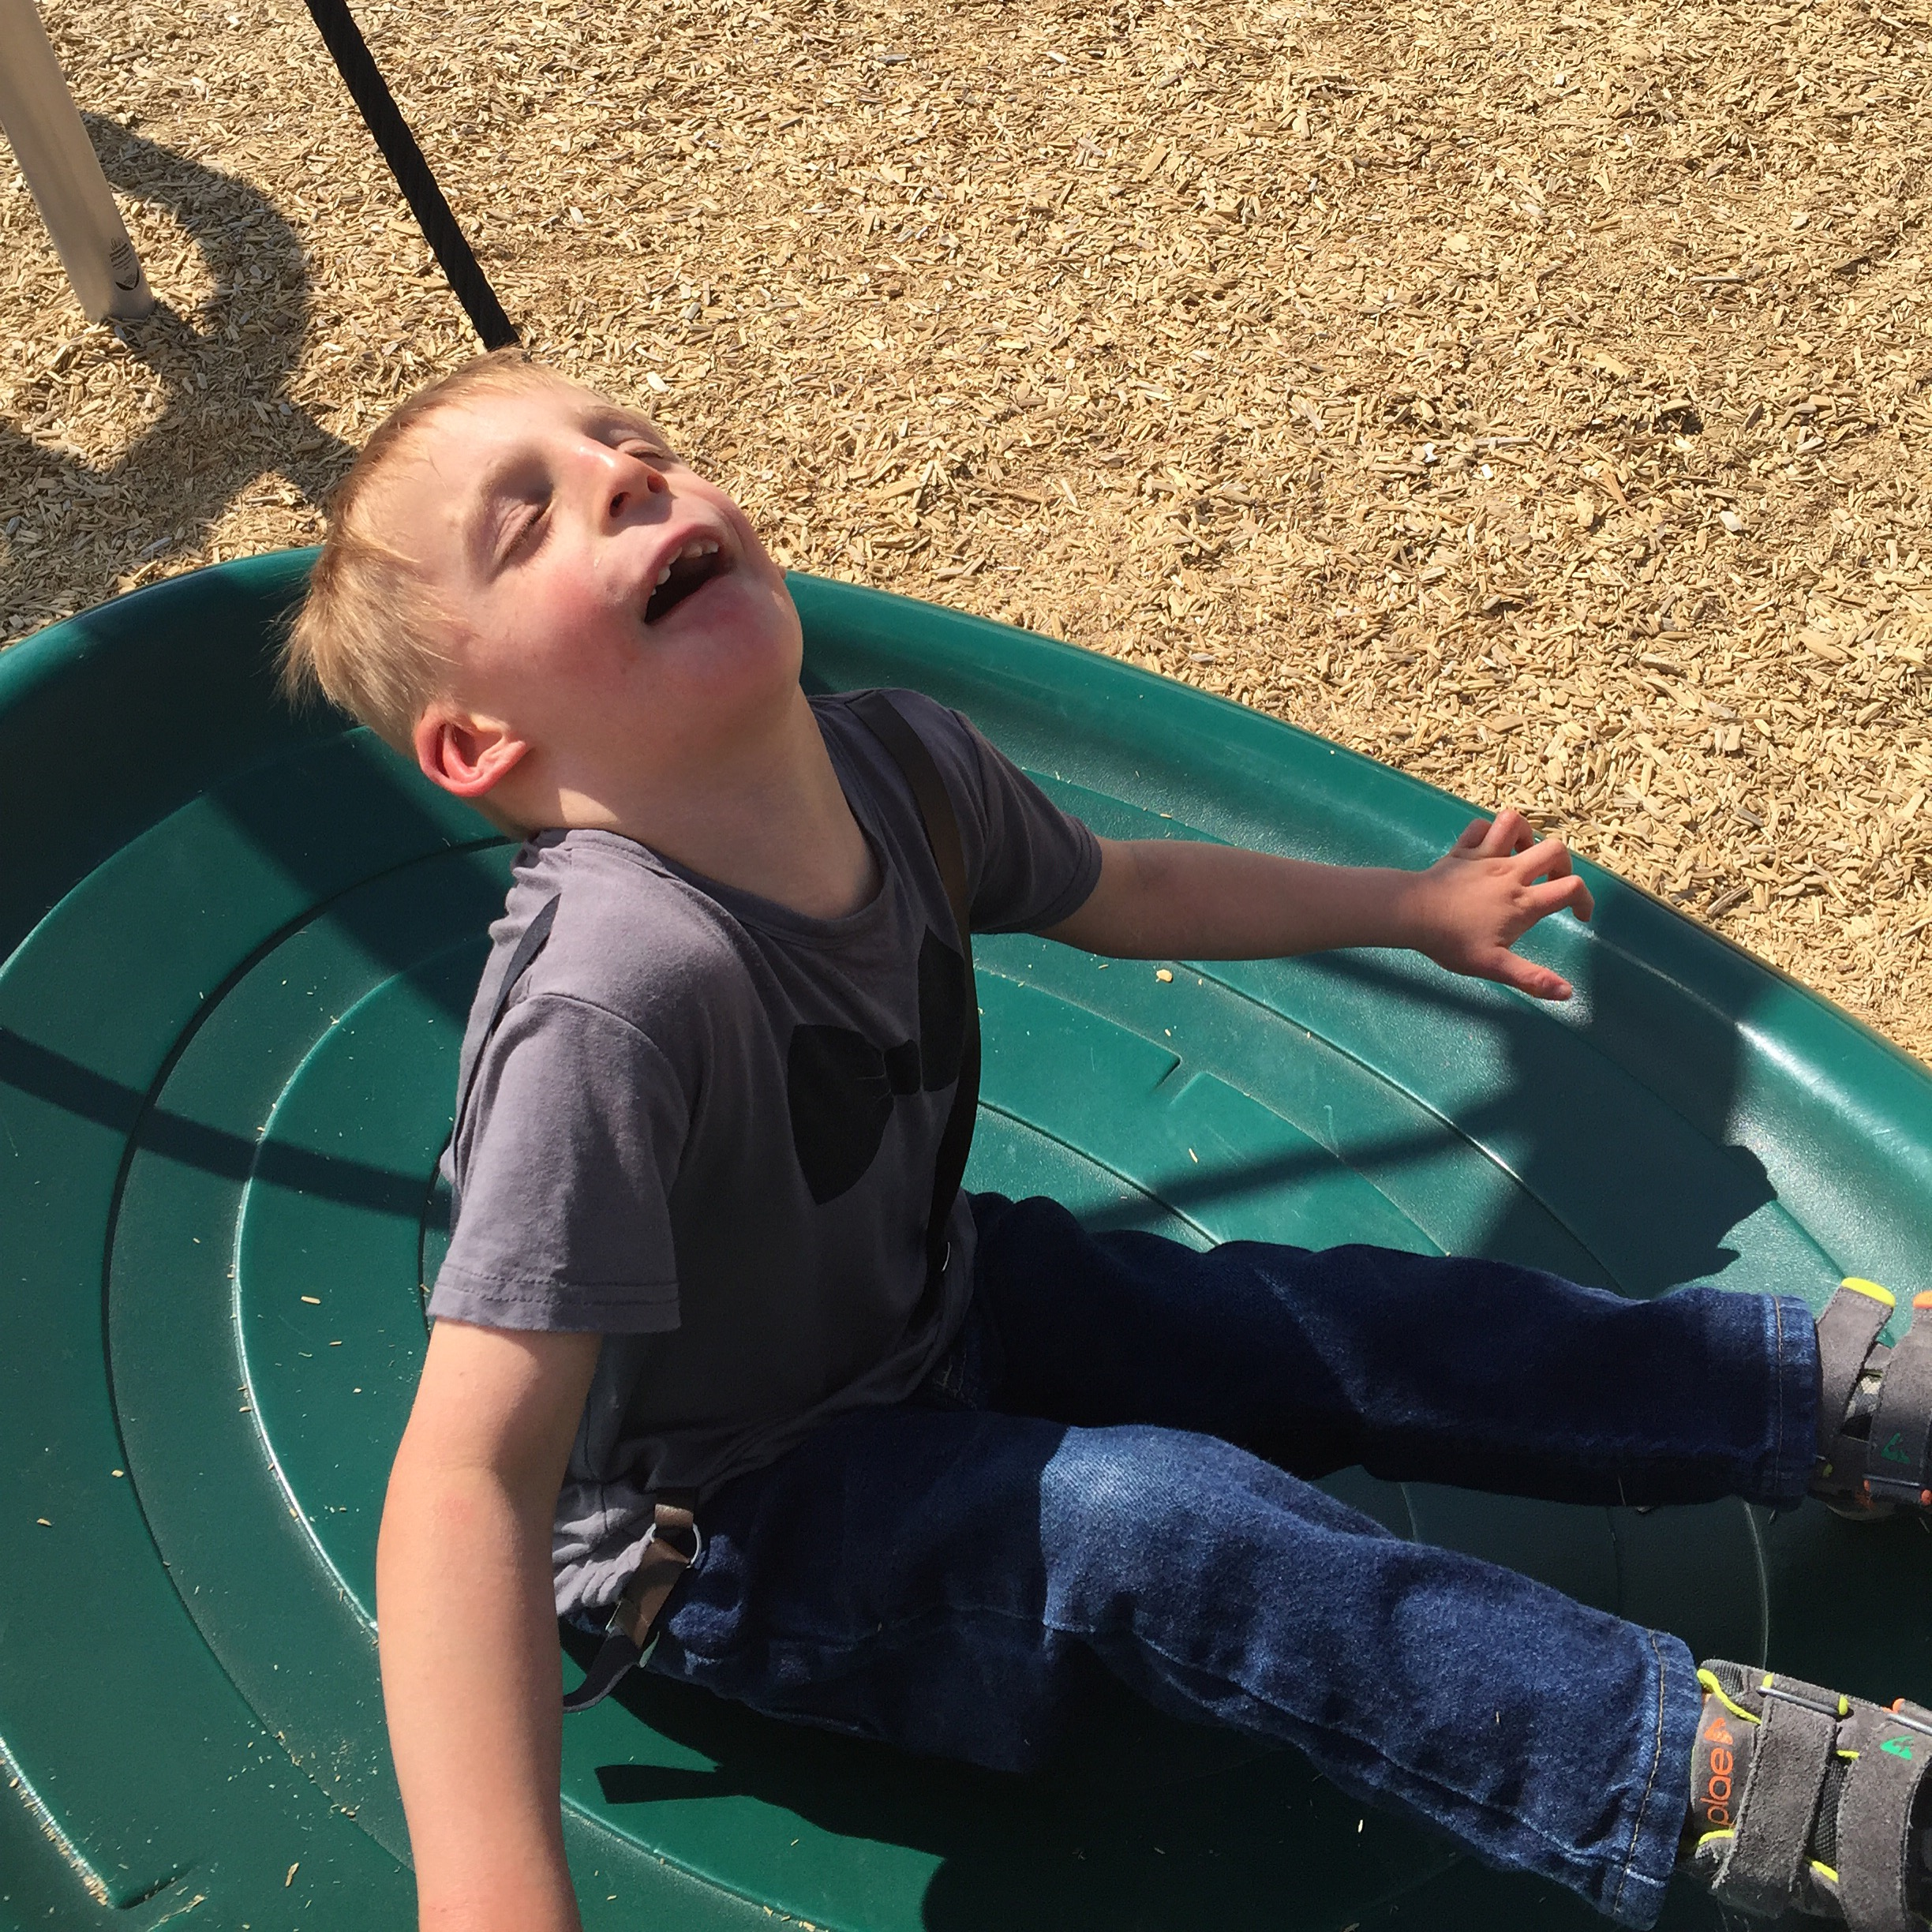 Atticus, summer 2016, laughing as he swings at the park.